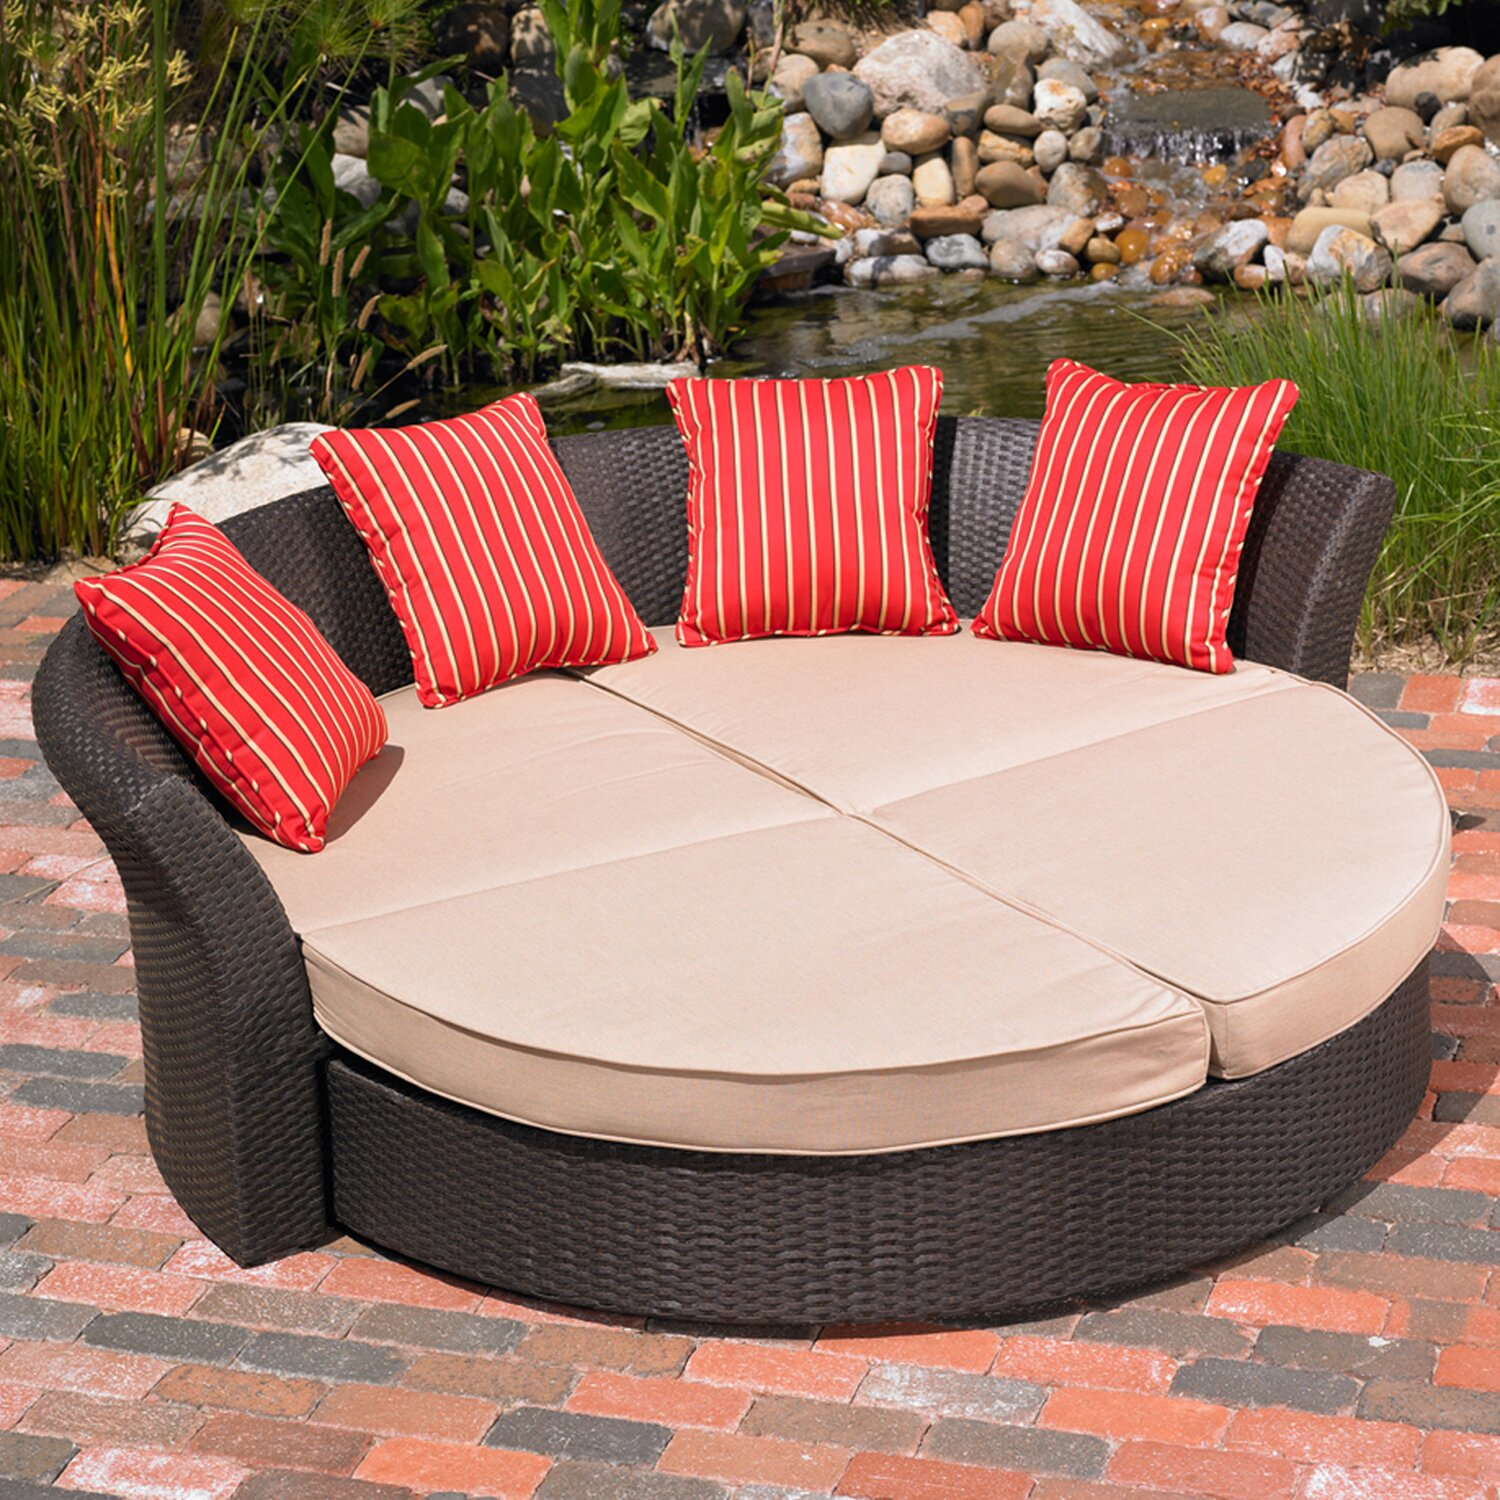 Mission hills corinth daybed reviews wayfair for Decoration list mhw